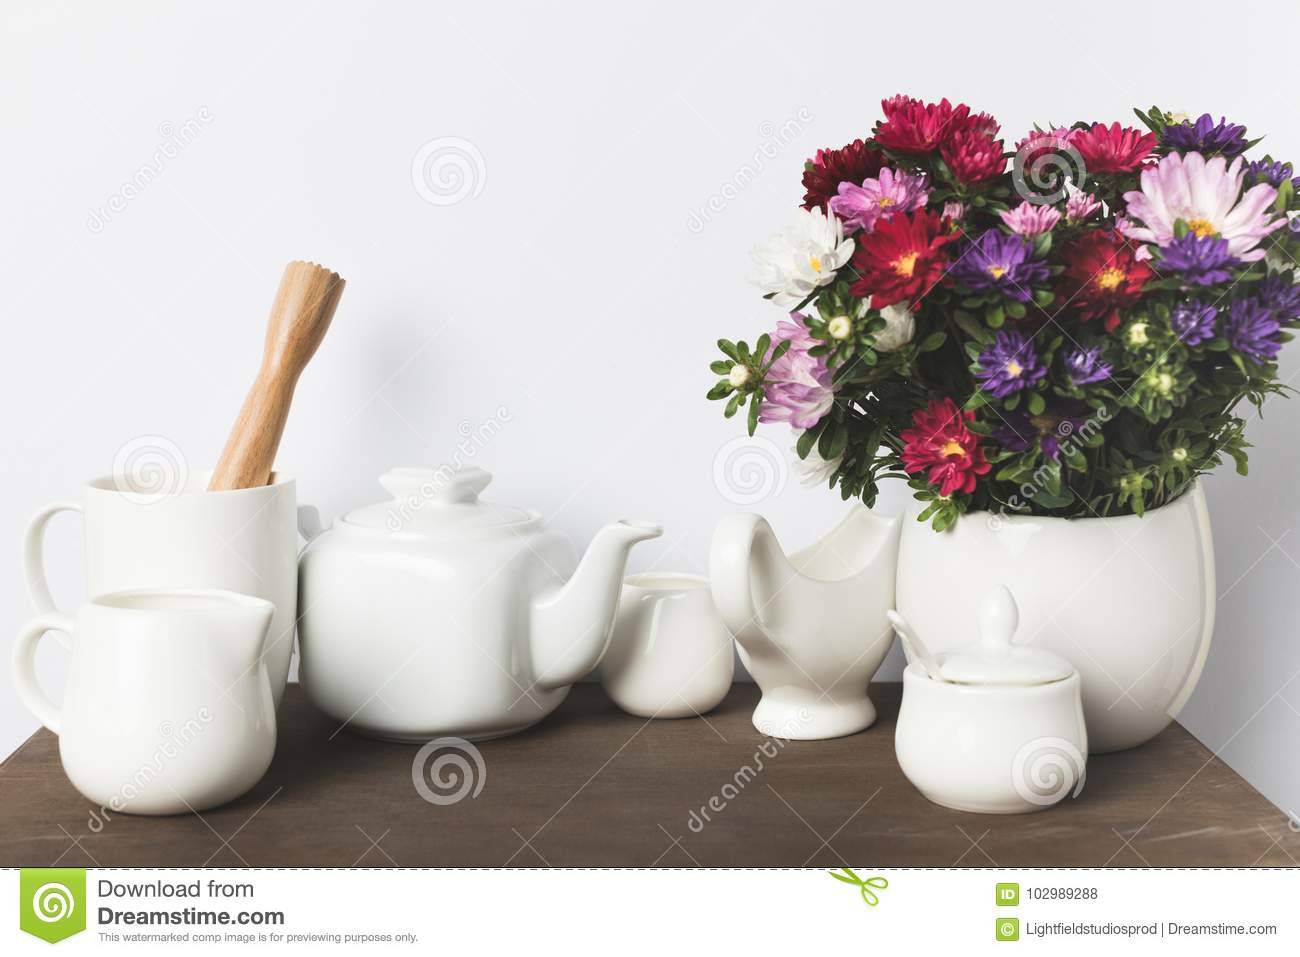 mexican ceramic vases of ceramic flower vase gallery kitchen utensils and flowers stock image throughout ceramic flower vase gallery kitchen utensils and flowers stock image of domestic table